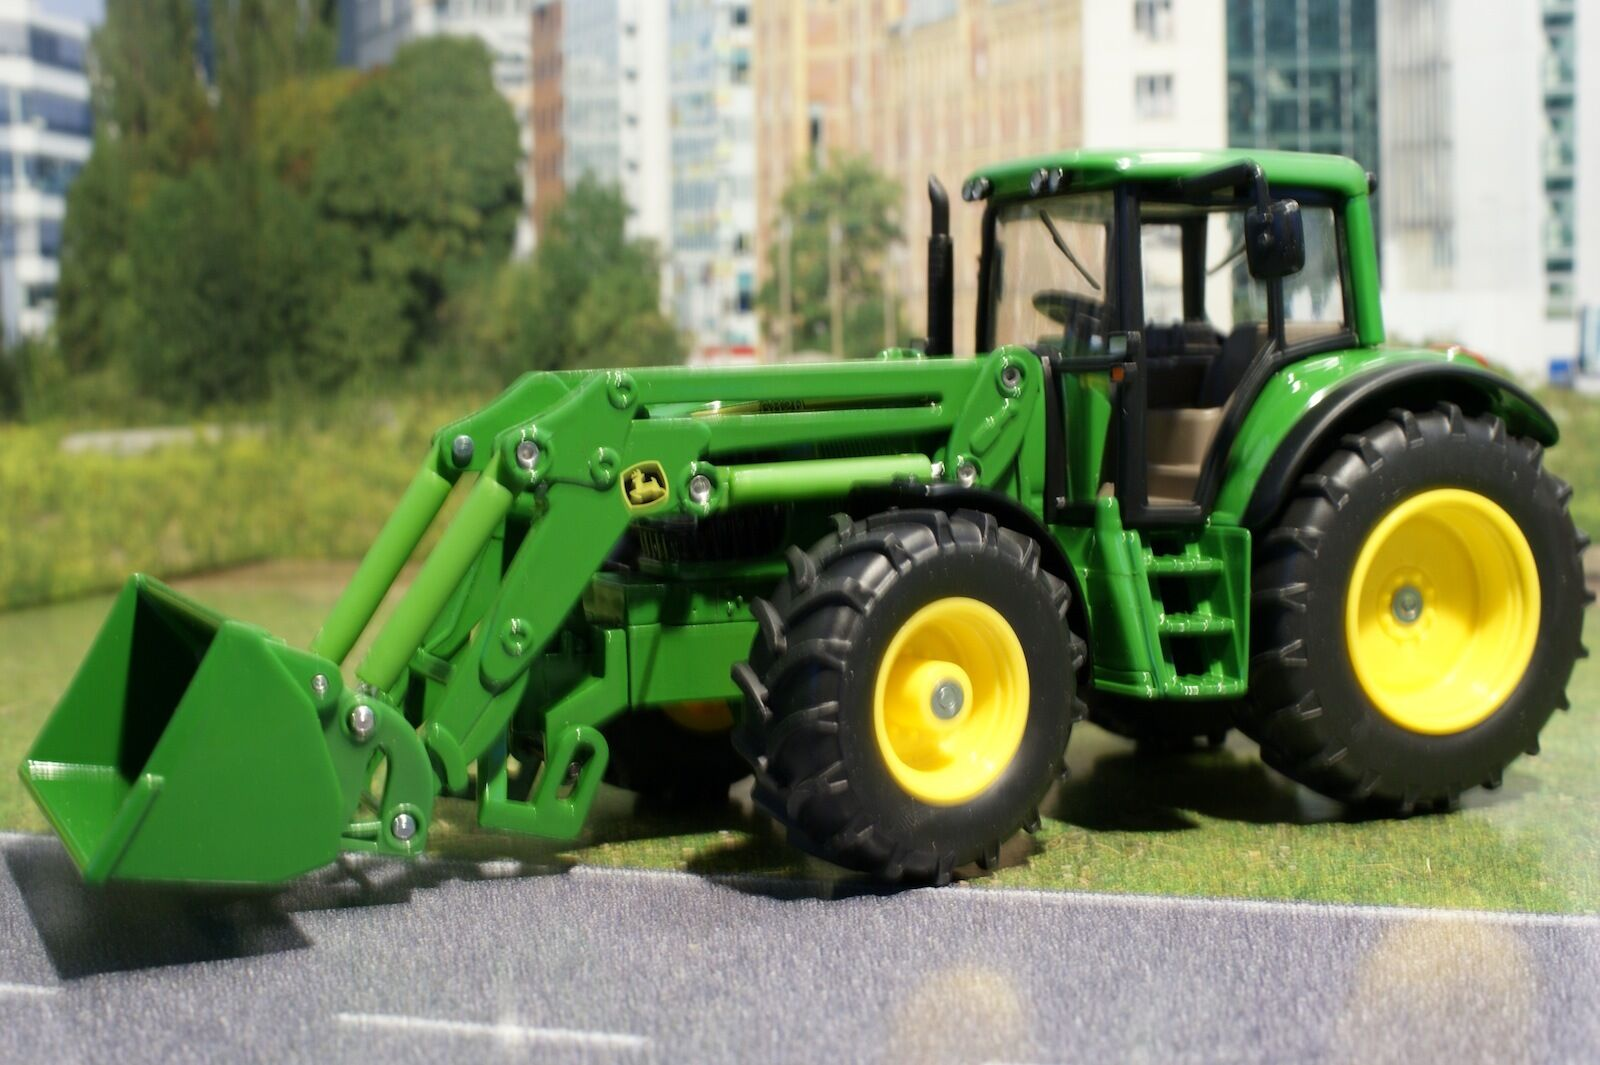 Siku 3652 - Diecast  John Deere 6820 Tractor with Front Loader - 1 32 Scale